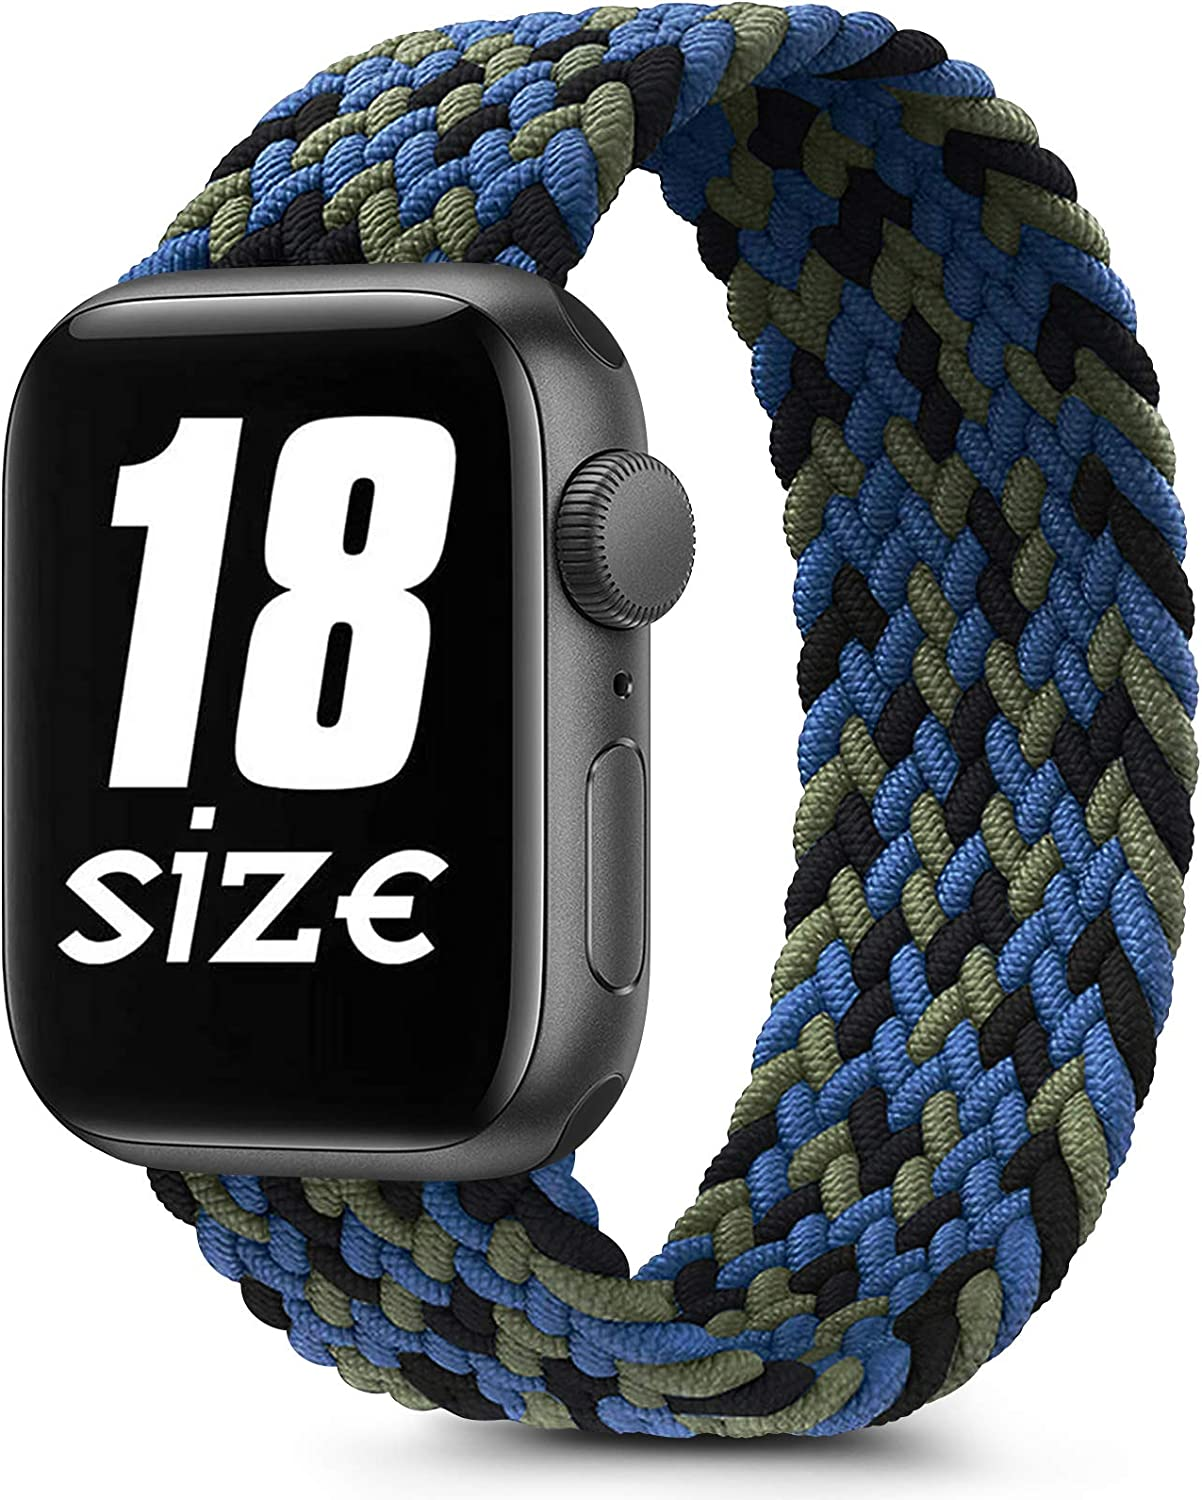 Braided Solo Loop Elastic Bands Compatible with Apple Watch 38mm 40mm 42mm 44mm, Soft Stretchy Sports Wristband for iWatch Series 6 5 4 3 2 1 SE (42mm/44mm-M, Camouflage Blue)